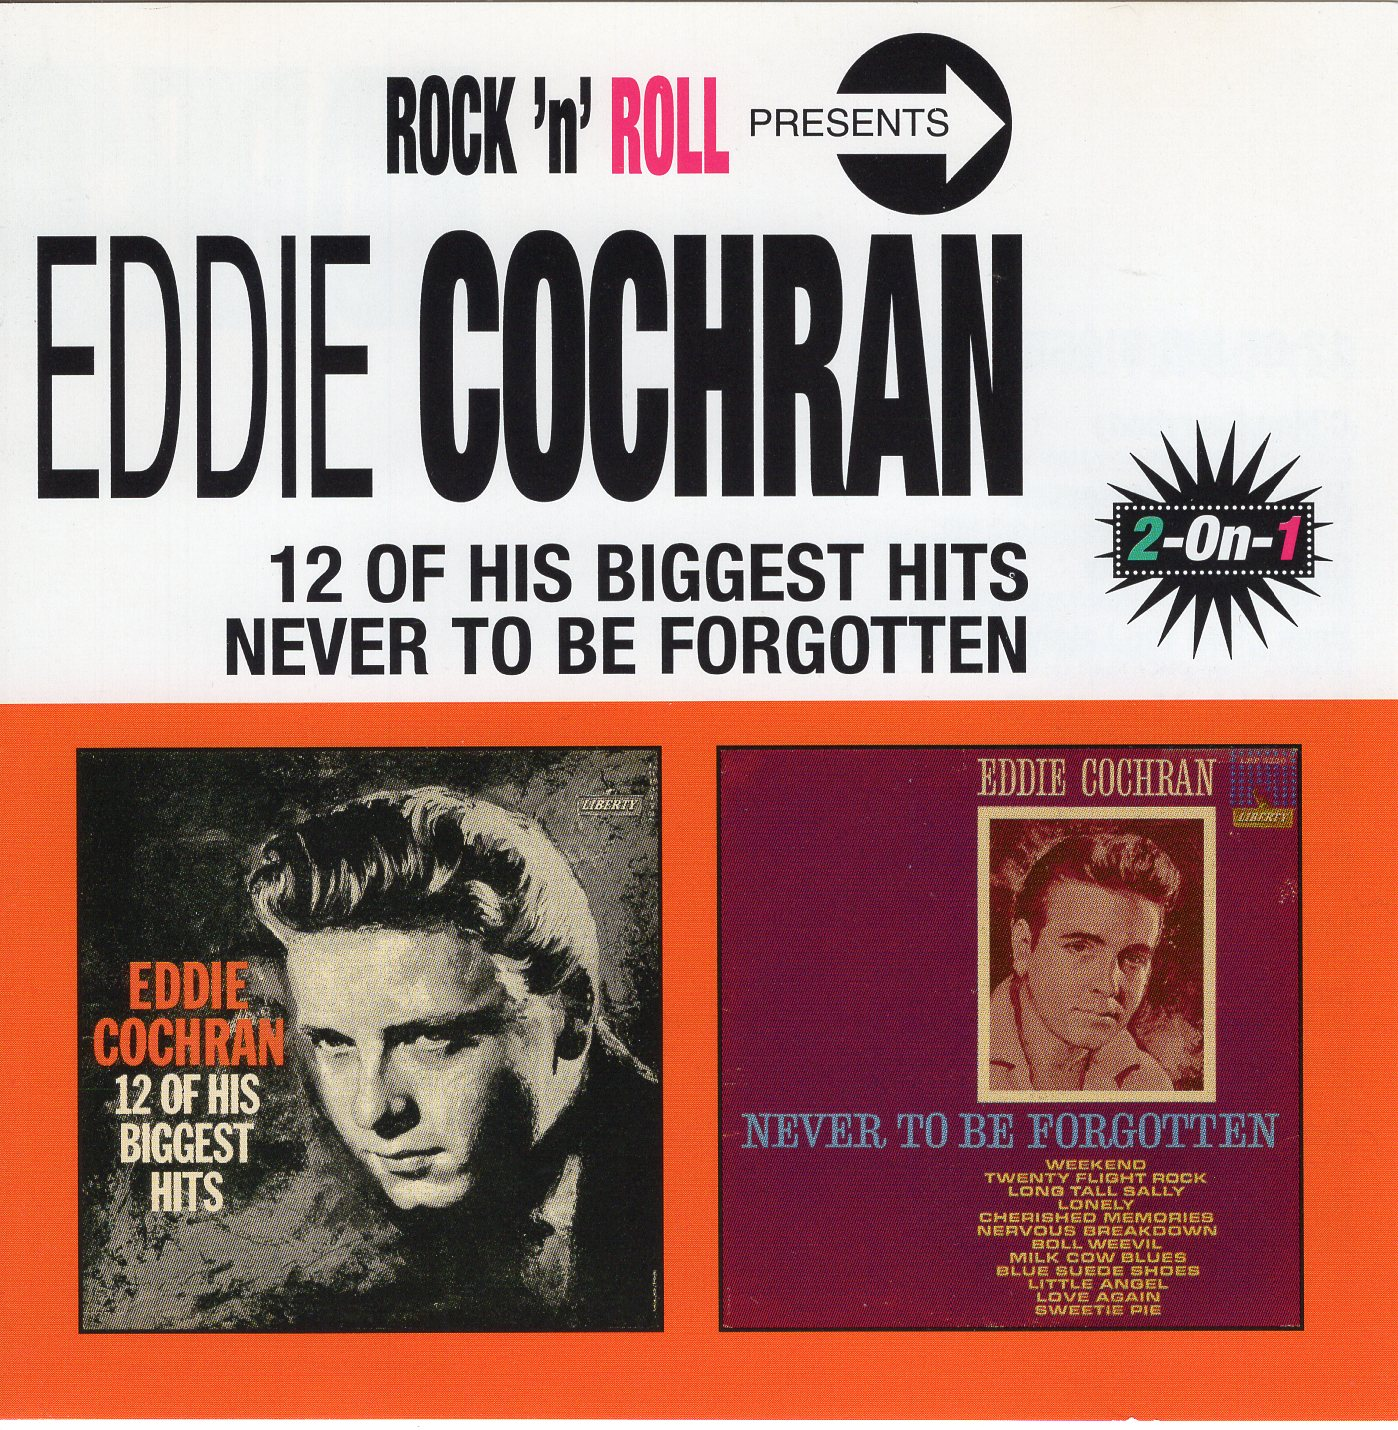 """Eddie Cochran 12 Of His Biggest Hits Never To Be Forgotten"" Eddie Cochran"